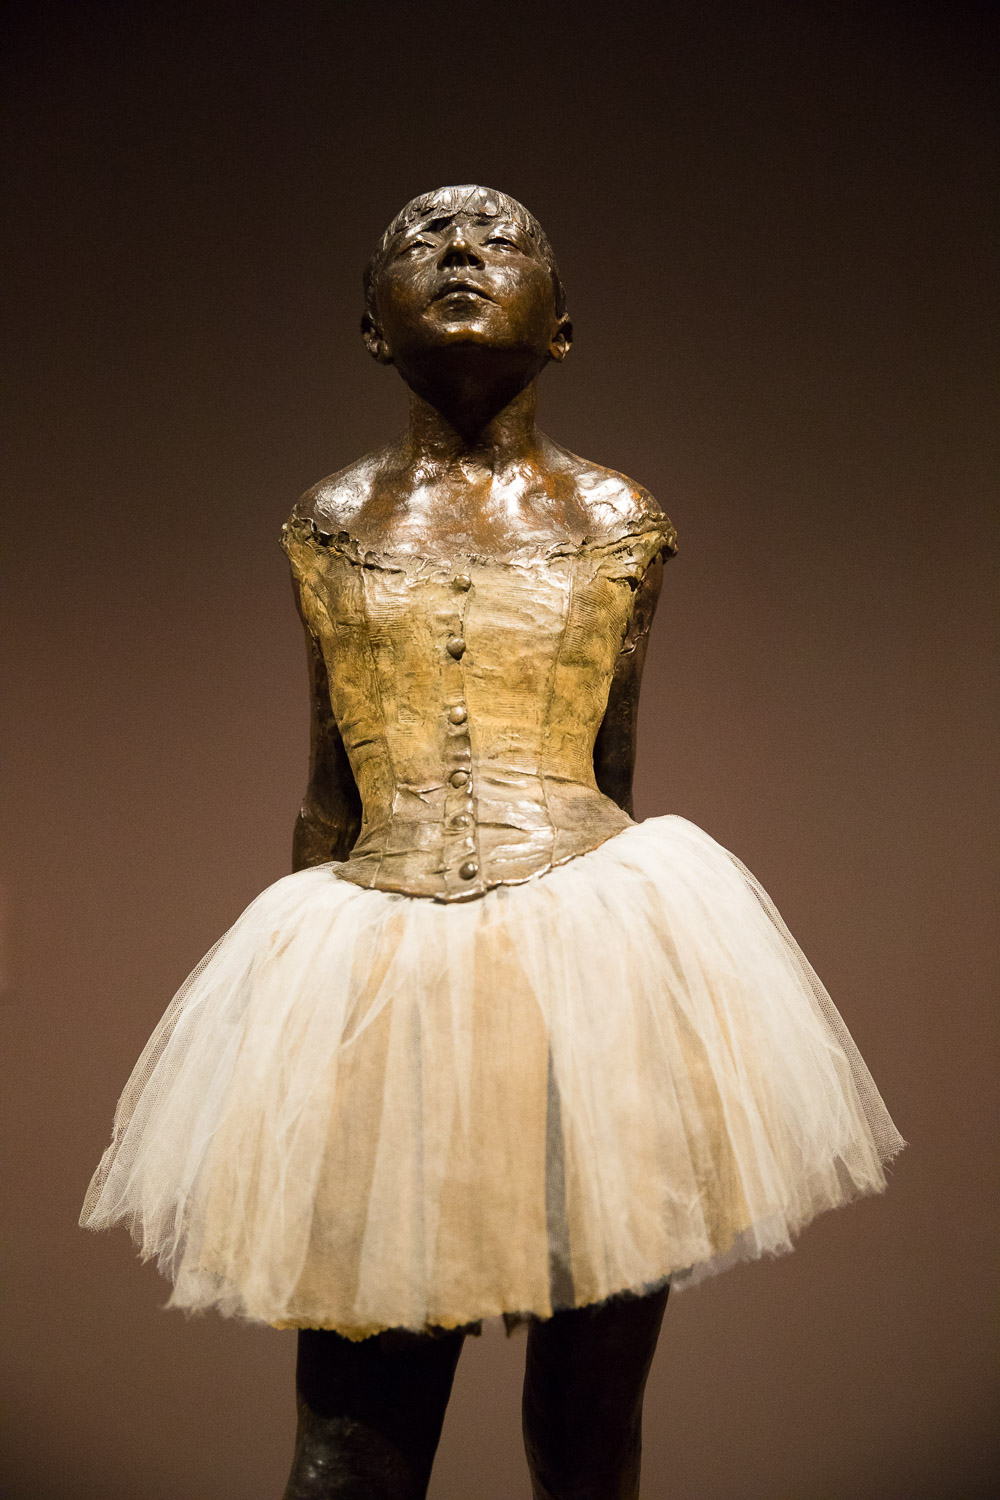 Virginia Museum of Fine Arts - the only statue Degas showed during his lifetime.